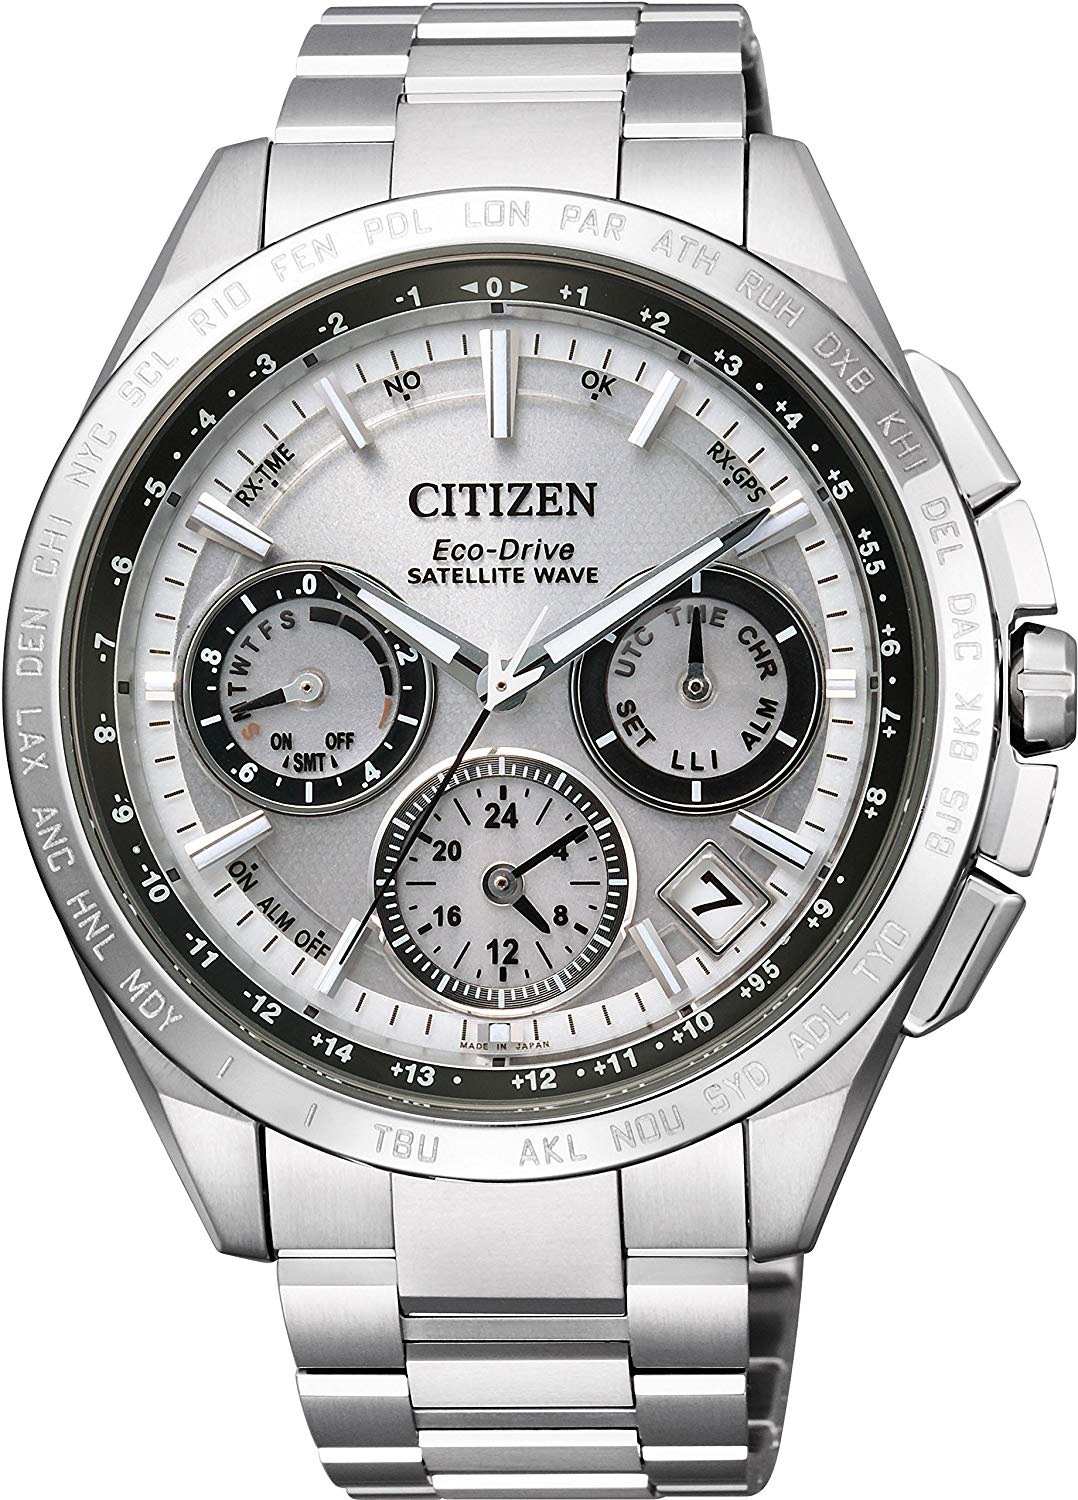 CITIZENのATTESA CC9010-66A